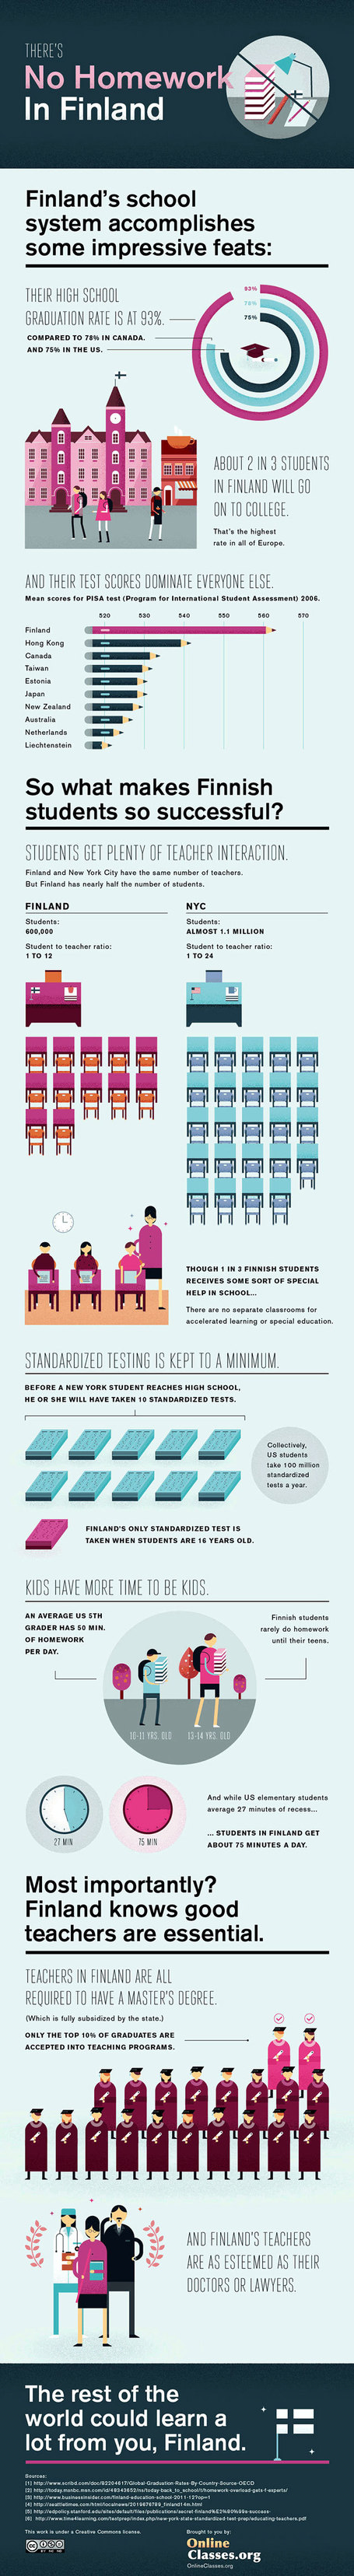 Finland's School System - Infographic | Finland | Scoop.it